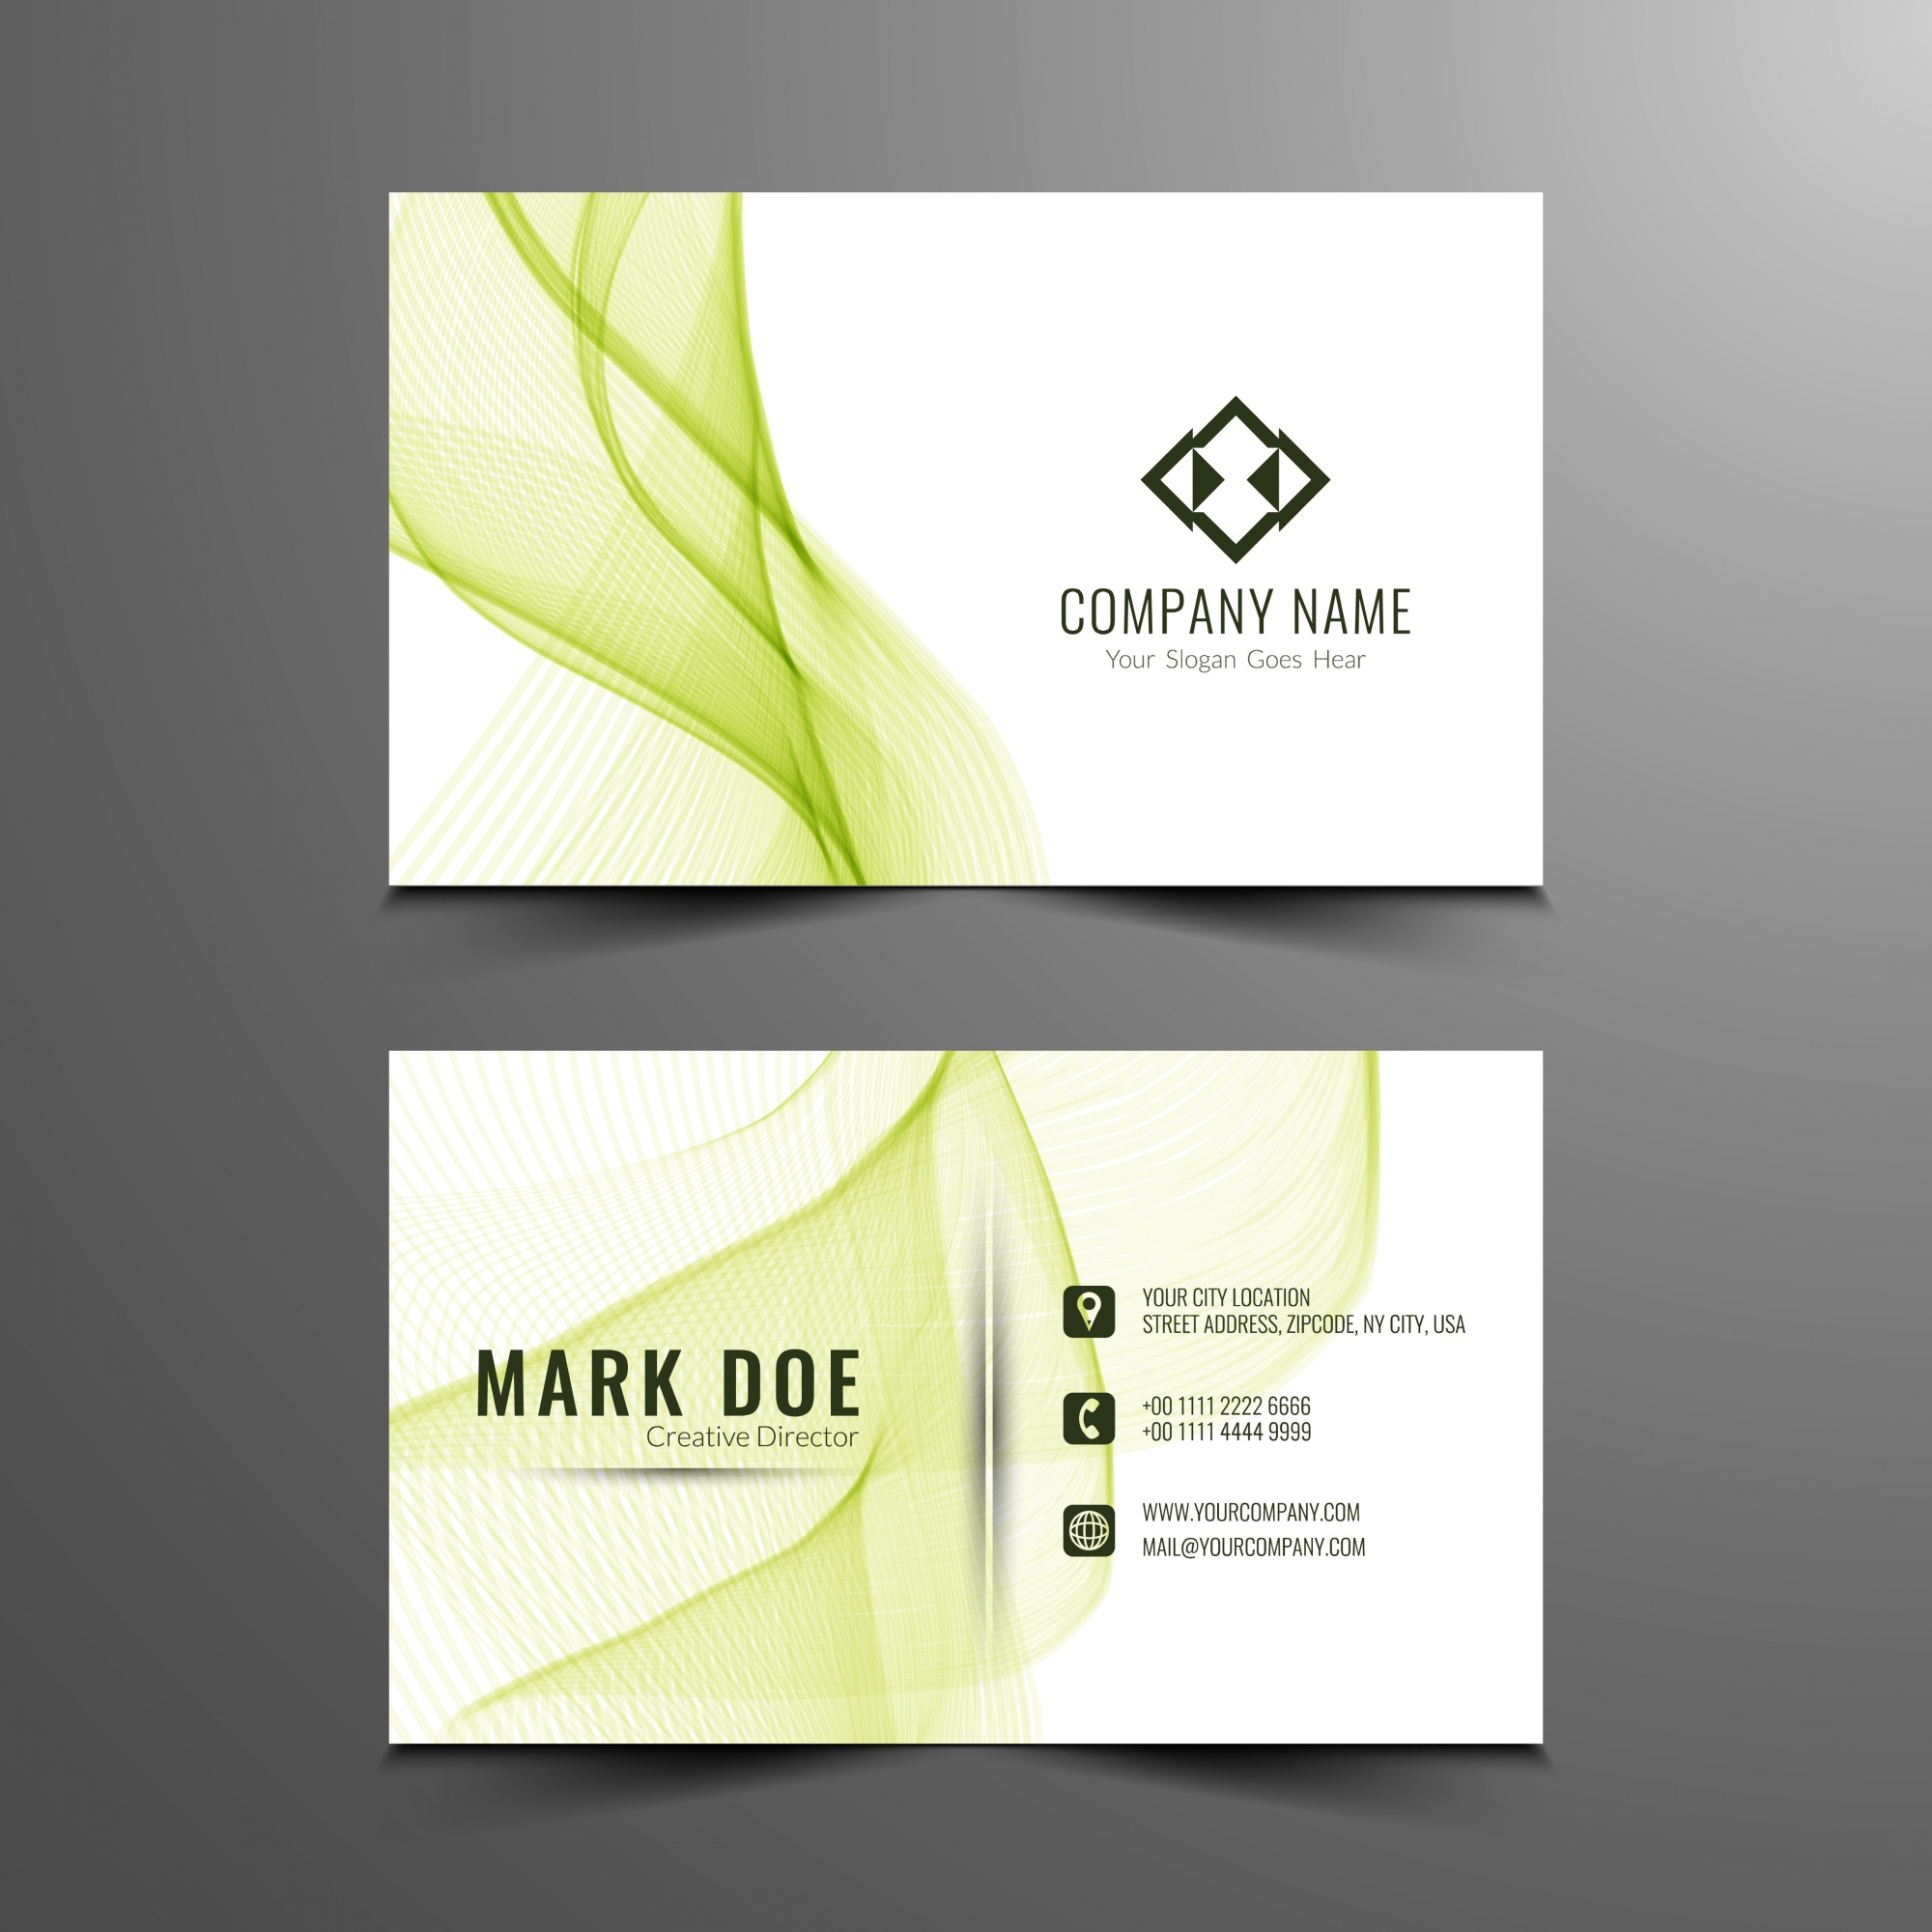 Green wavy business card template